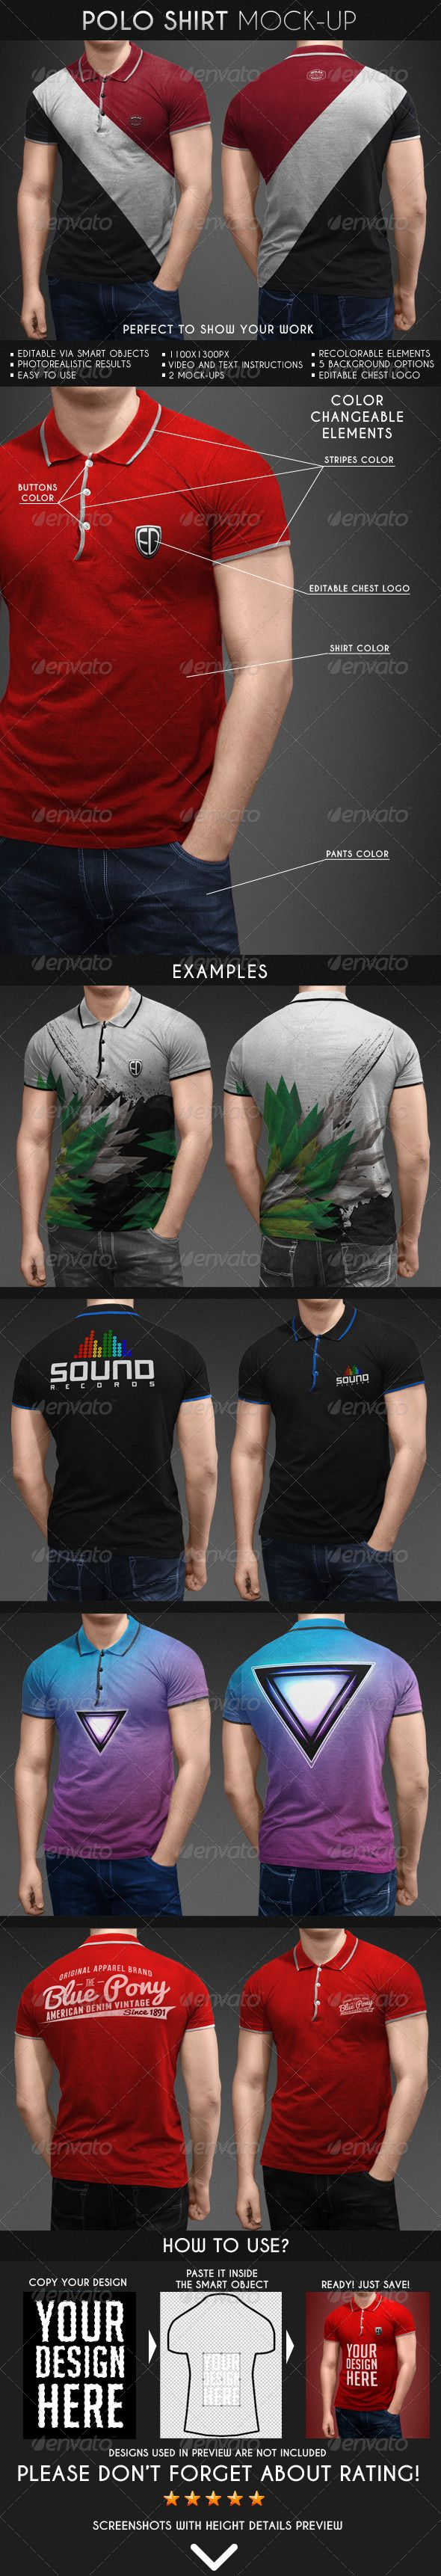 Polo Shirt Mock-Up  #shirt #t-shirt #t-shirts • Available here → http://graphicriver.net/item/polo-shirt-mockup/6913975?s_rank=1734&ref=pxcr